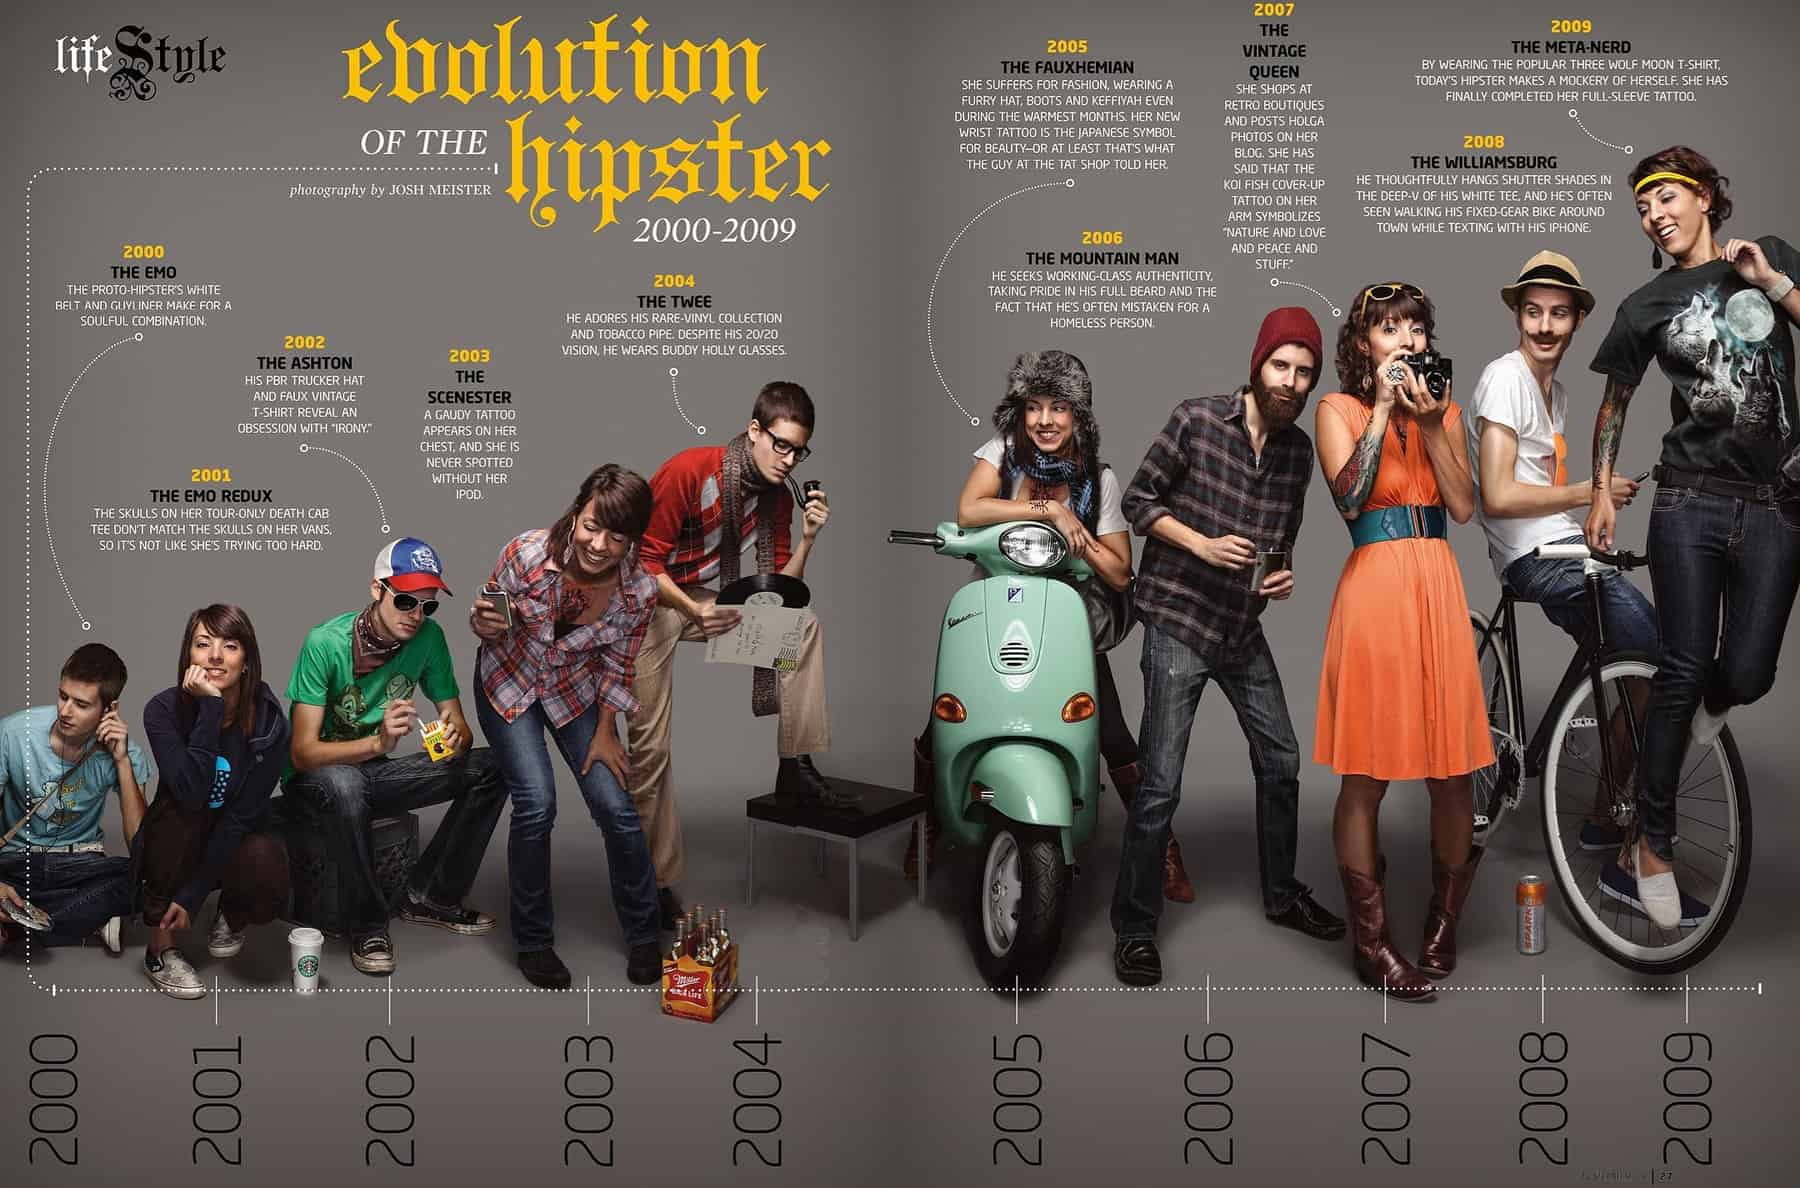 From Flappers To Hipsters Reasoncom